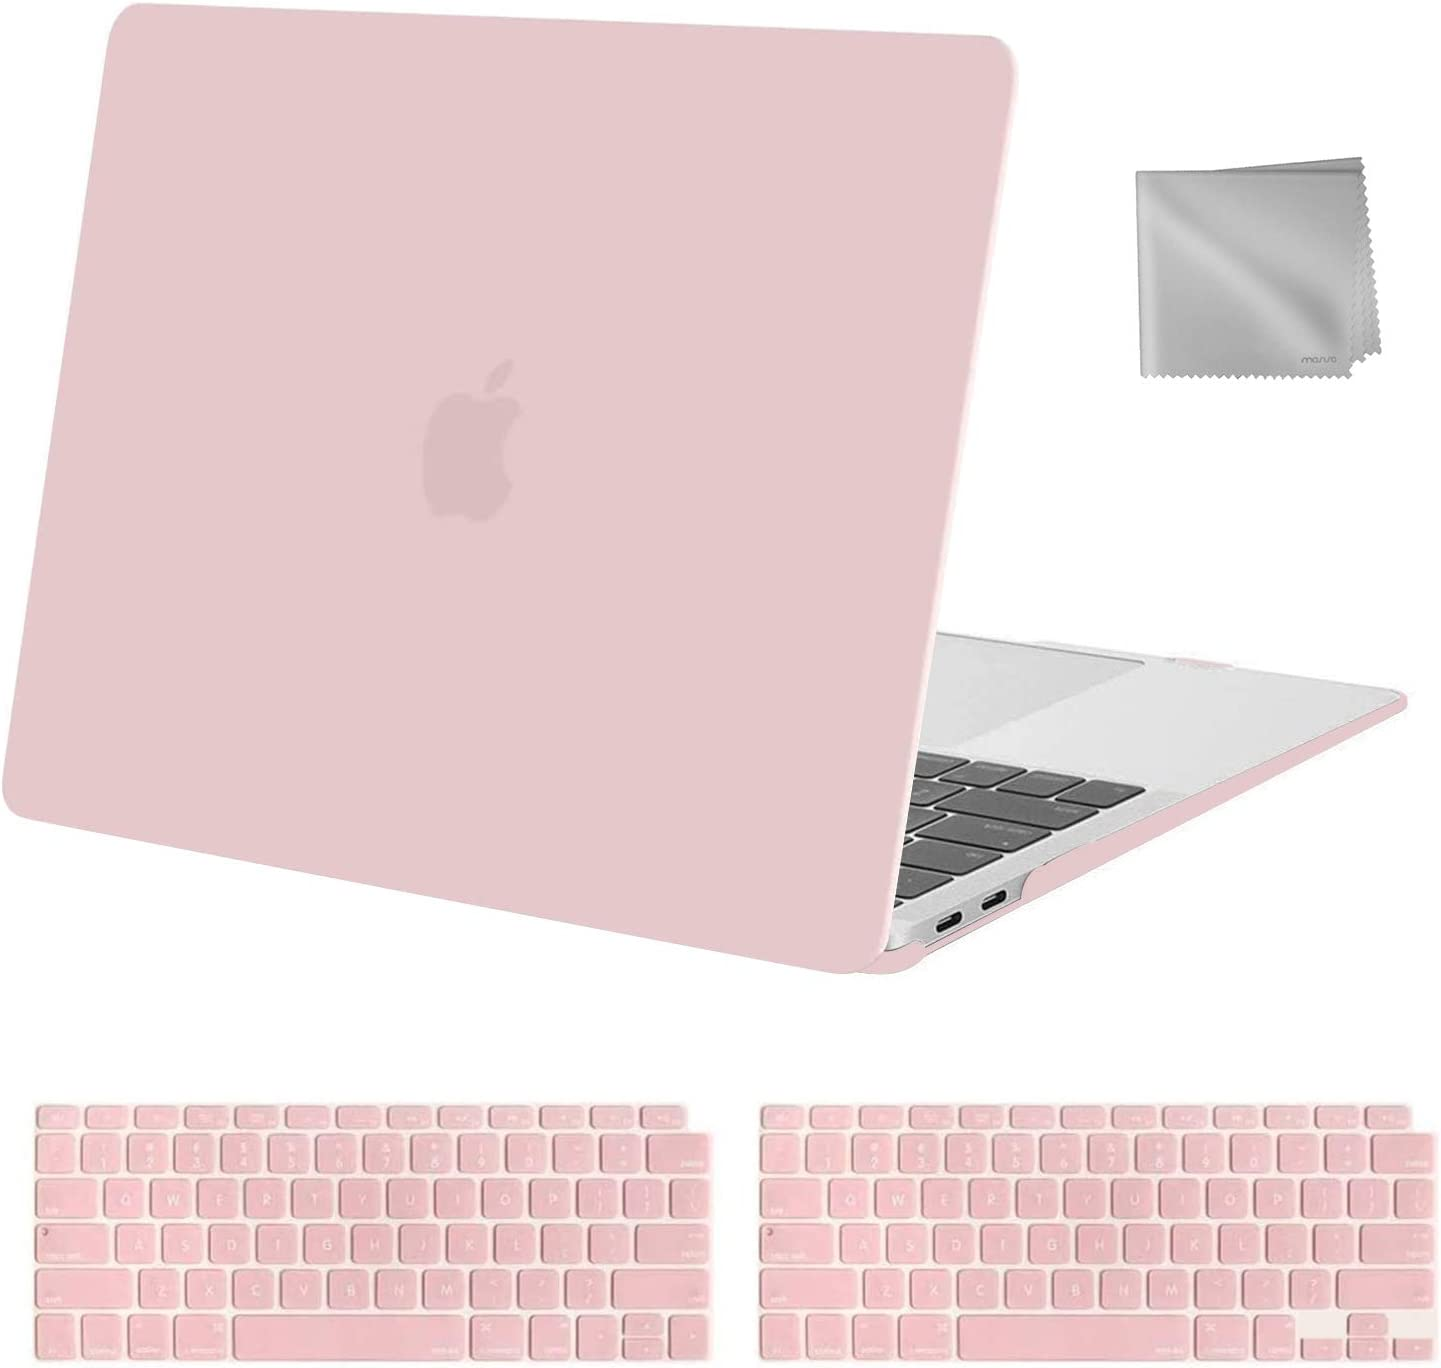 MOSISO MacBook Air 13 inch Case 2020 2019 2018 Release A2179 A1932, Plastic Hard Shell Case&Keyboard Cover&Wipe Cloth Compatible with MacBook Air 13 inch with Retina Display, Rose Quartz